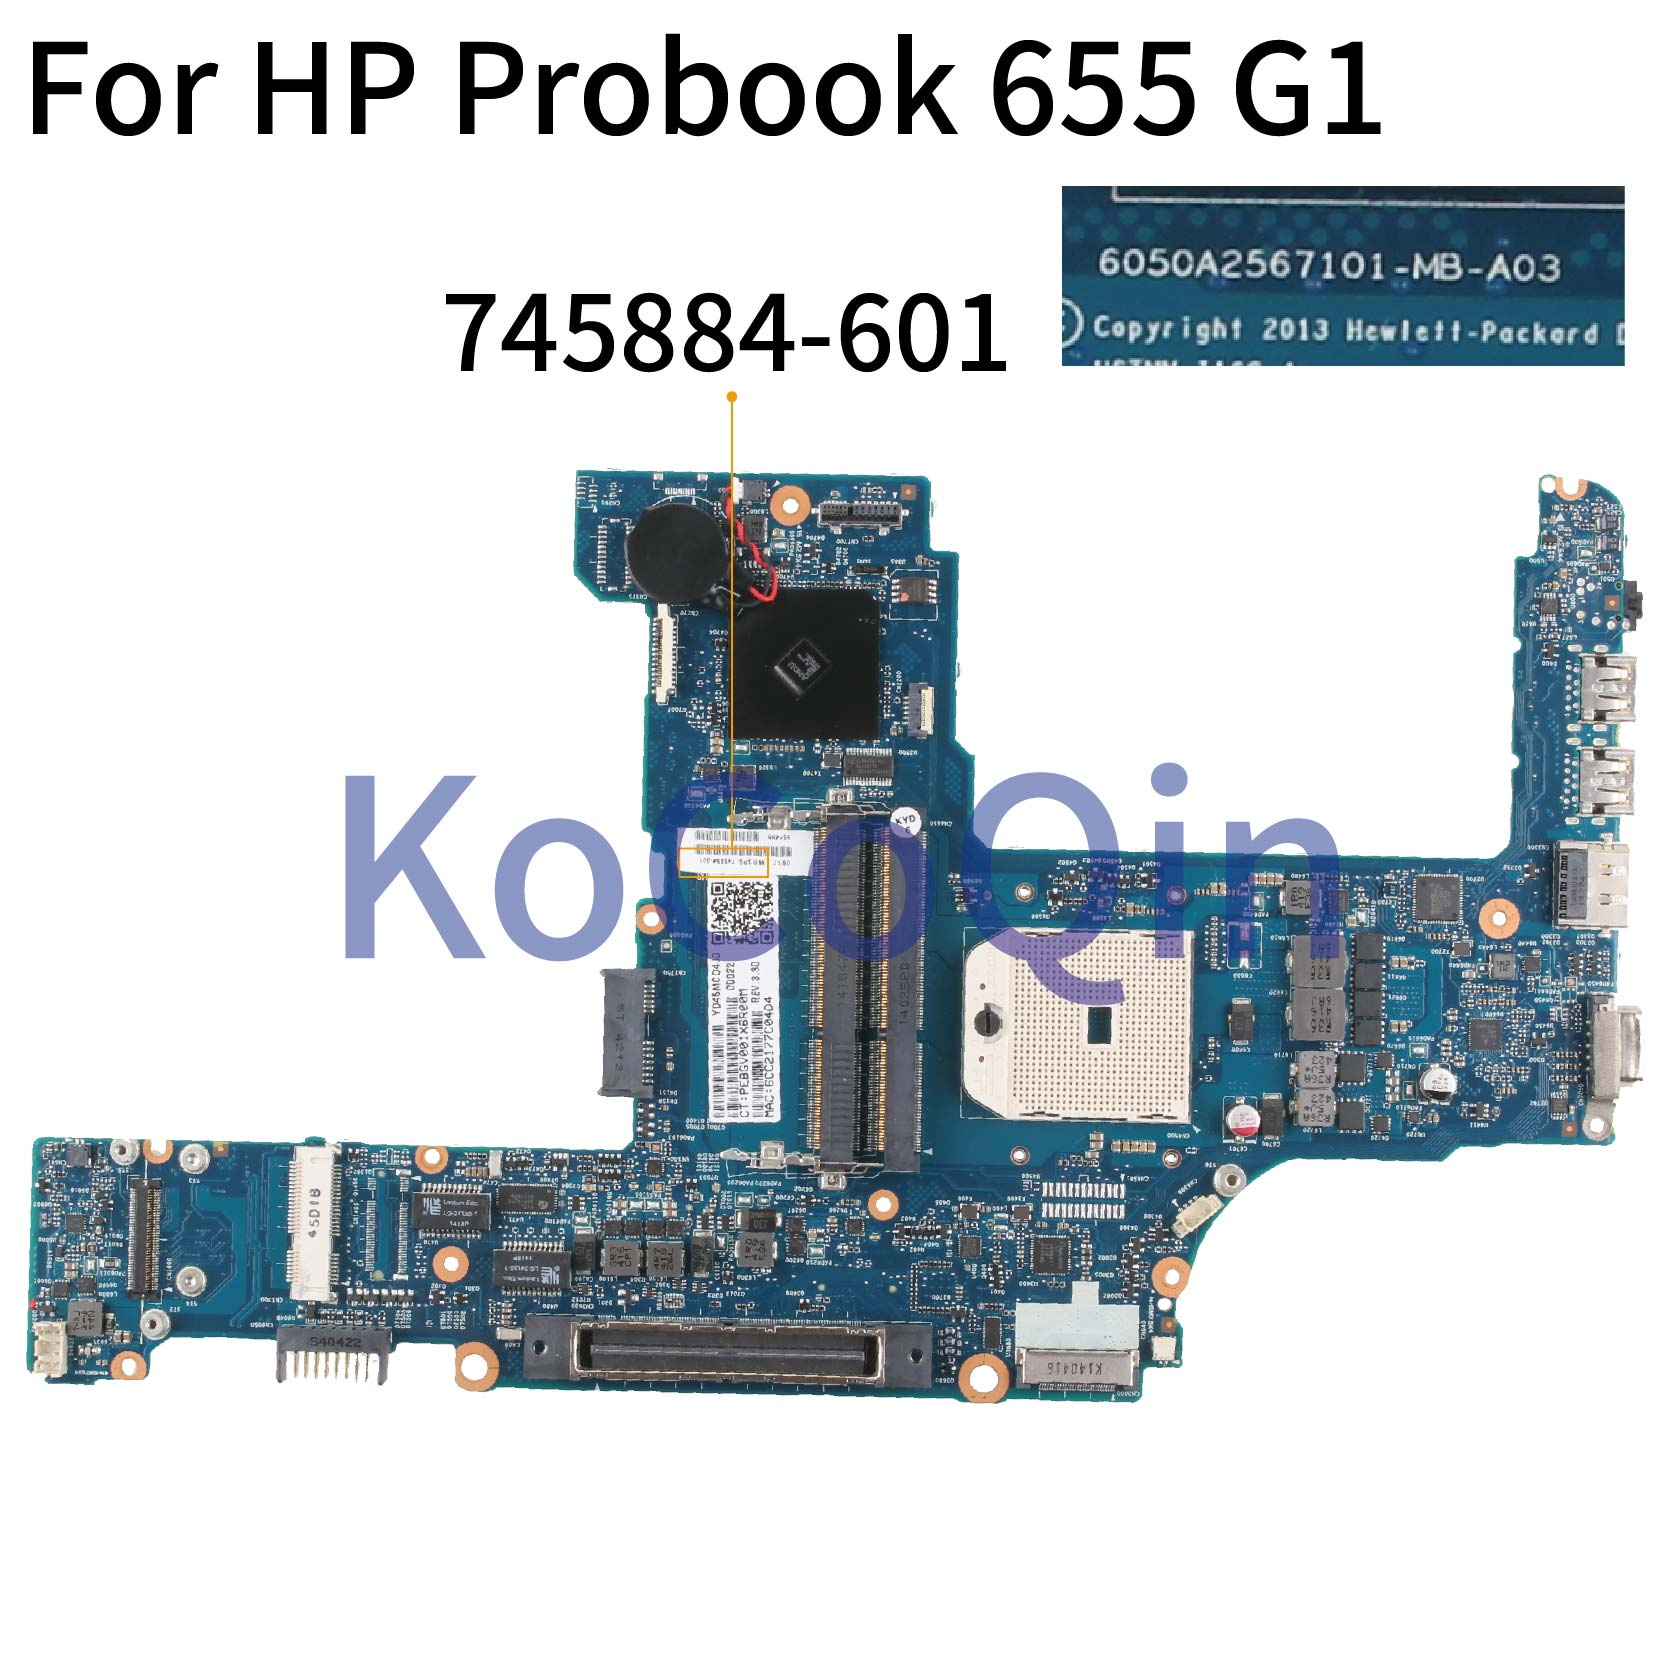 KoCoQin Laptop Motherboard For HP Probook 645 655 G1 Mainboard 745884-001 745884-601 6050A2567101-MB-A03